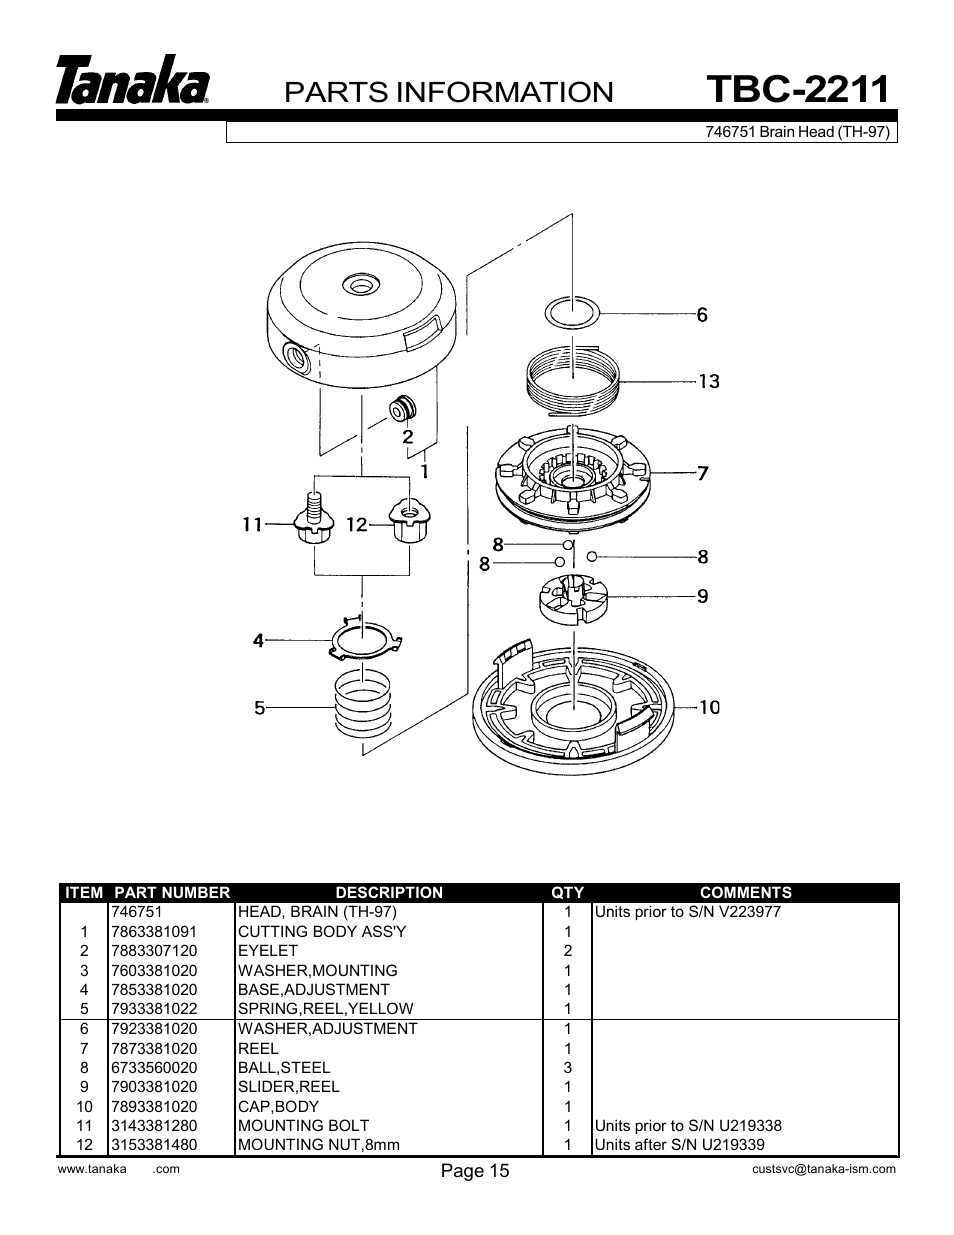 Cutting head (brain 97), Tbc-2211, Parts information